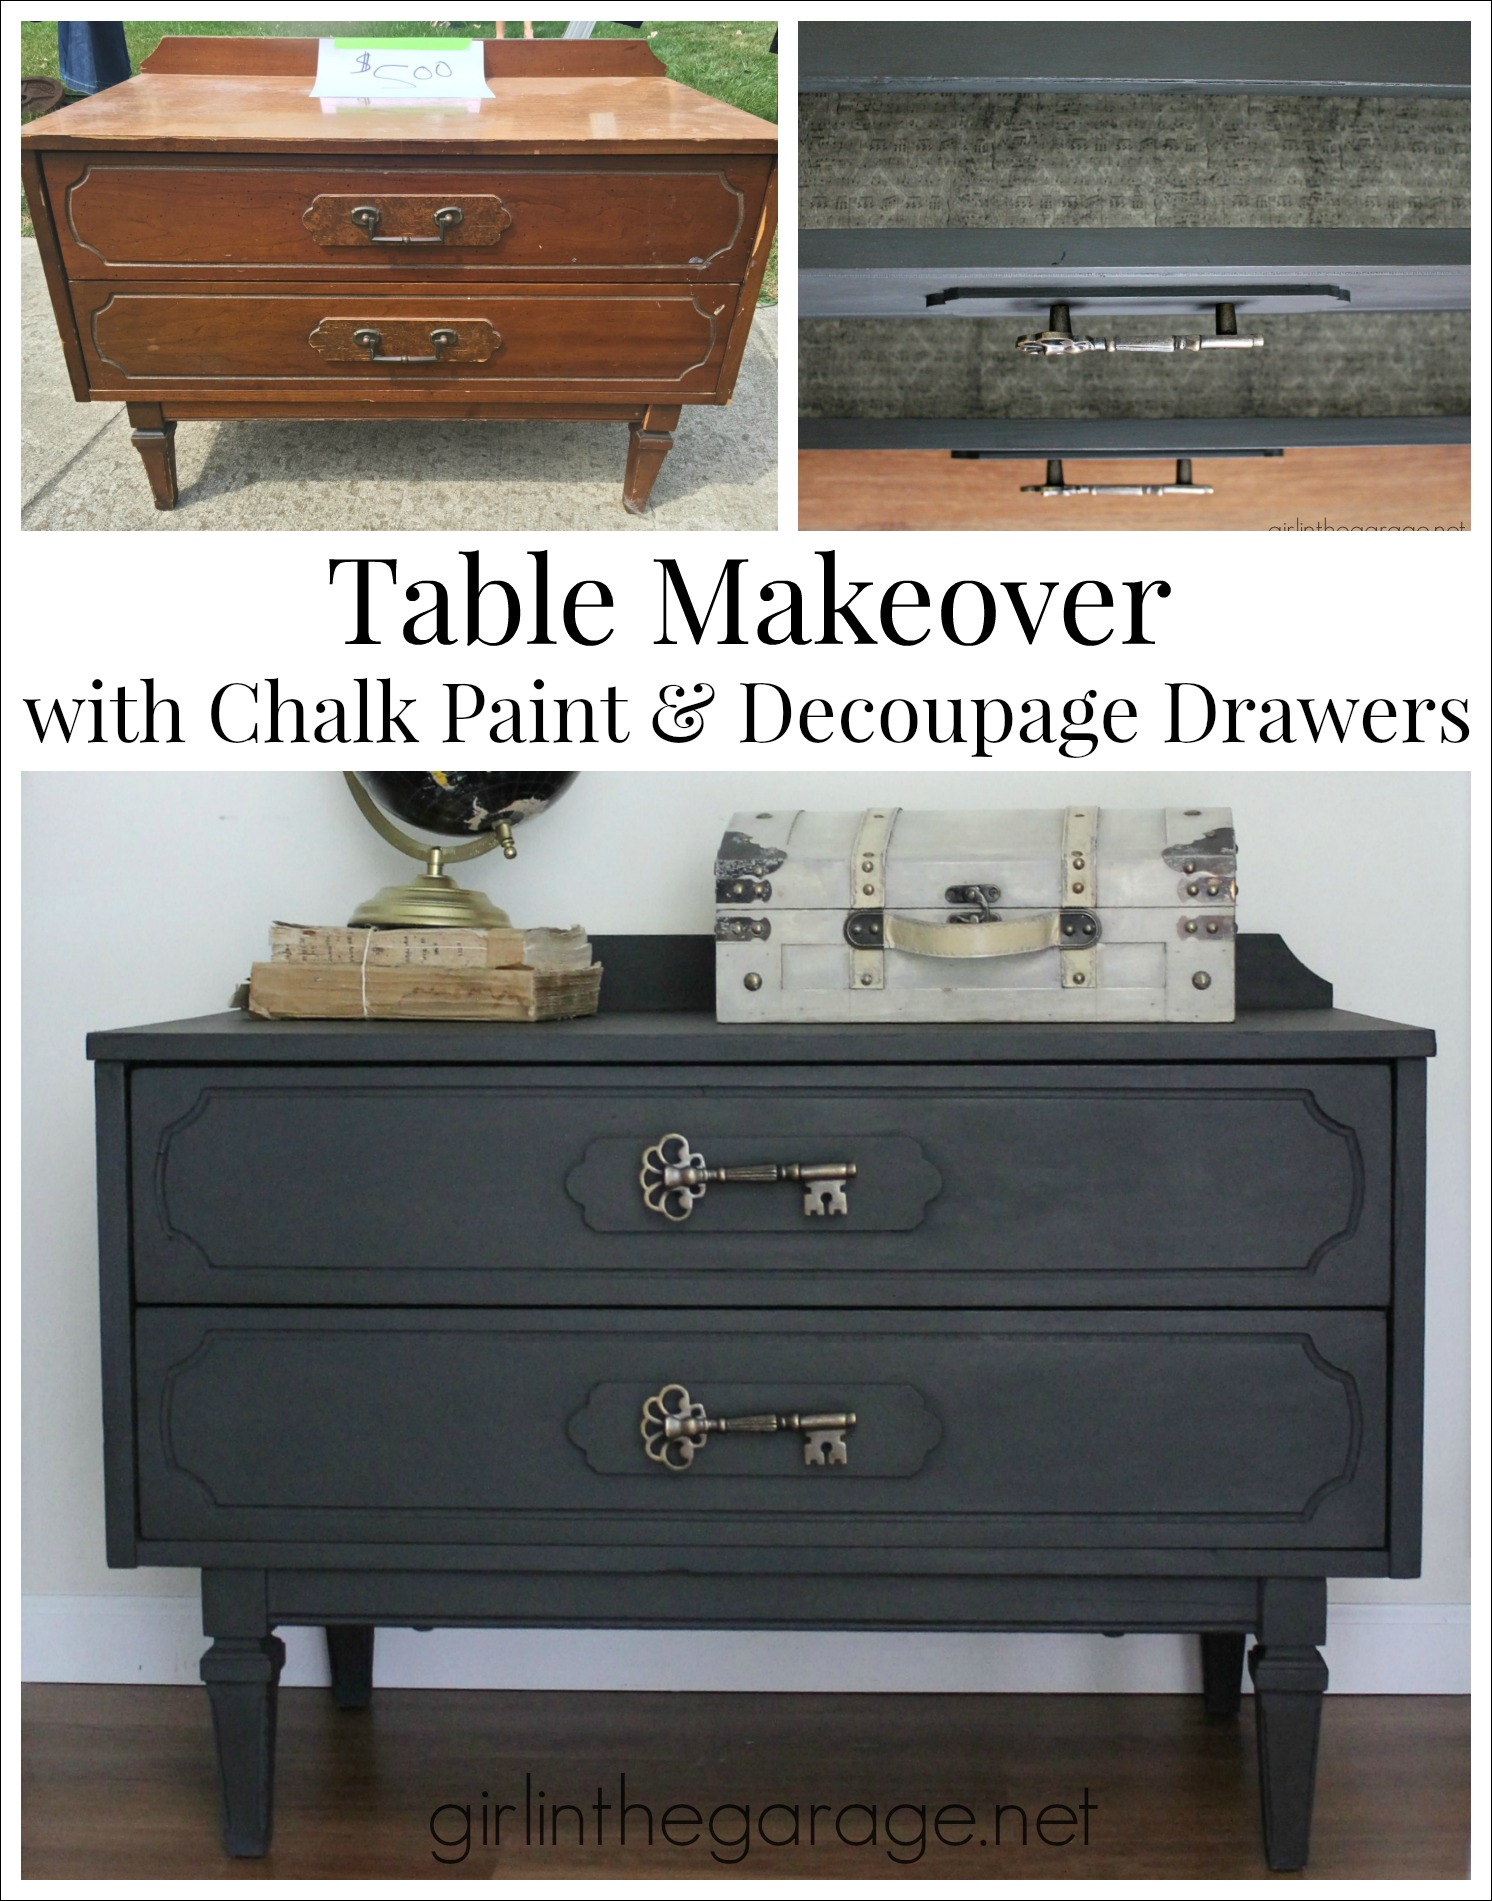 Painted Table in Graphite Chalk Paint with Decoupage Drawers - Girl in the Garage